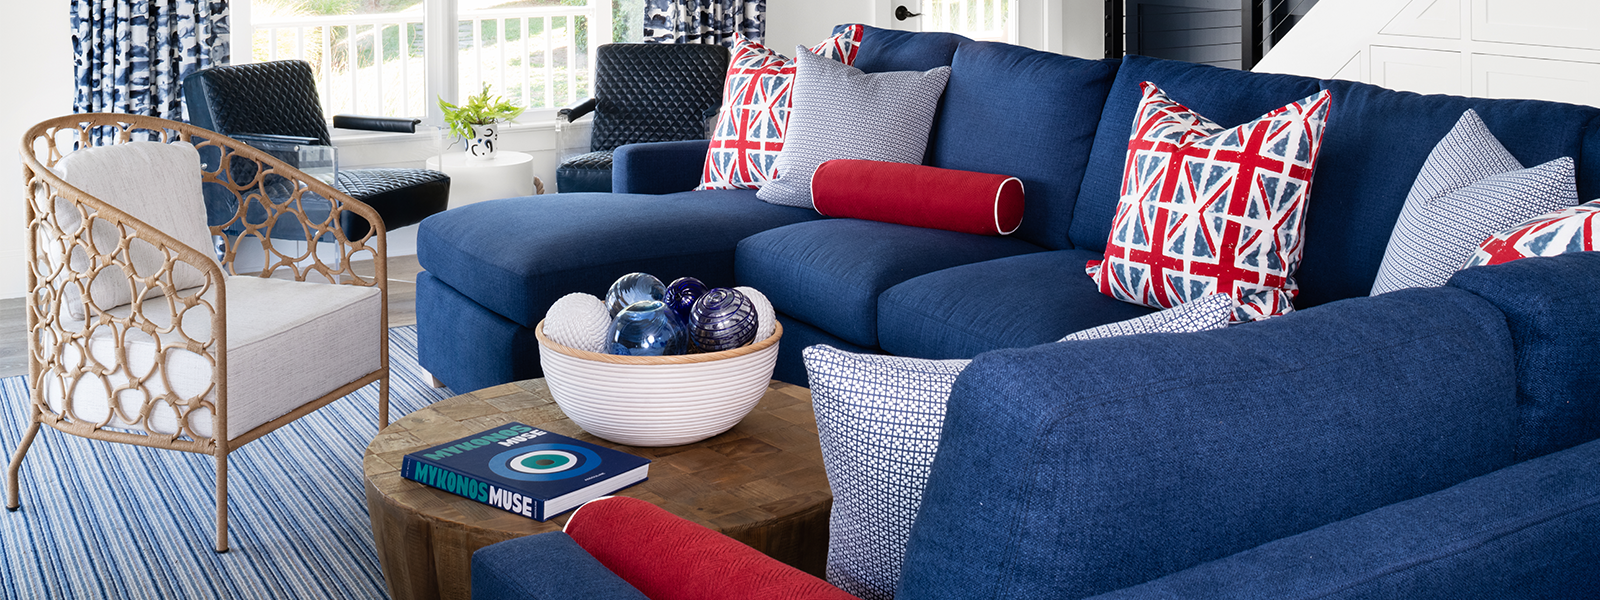 Close up of living room with blue sectional with union jack pillows and wicker side chair - Jamie Merida Interiors